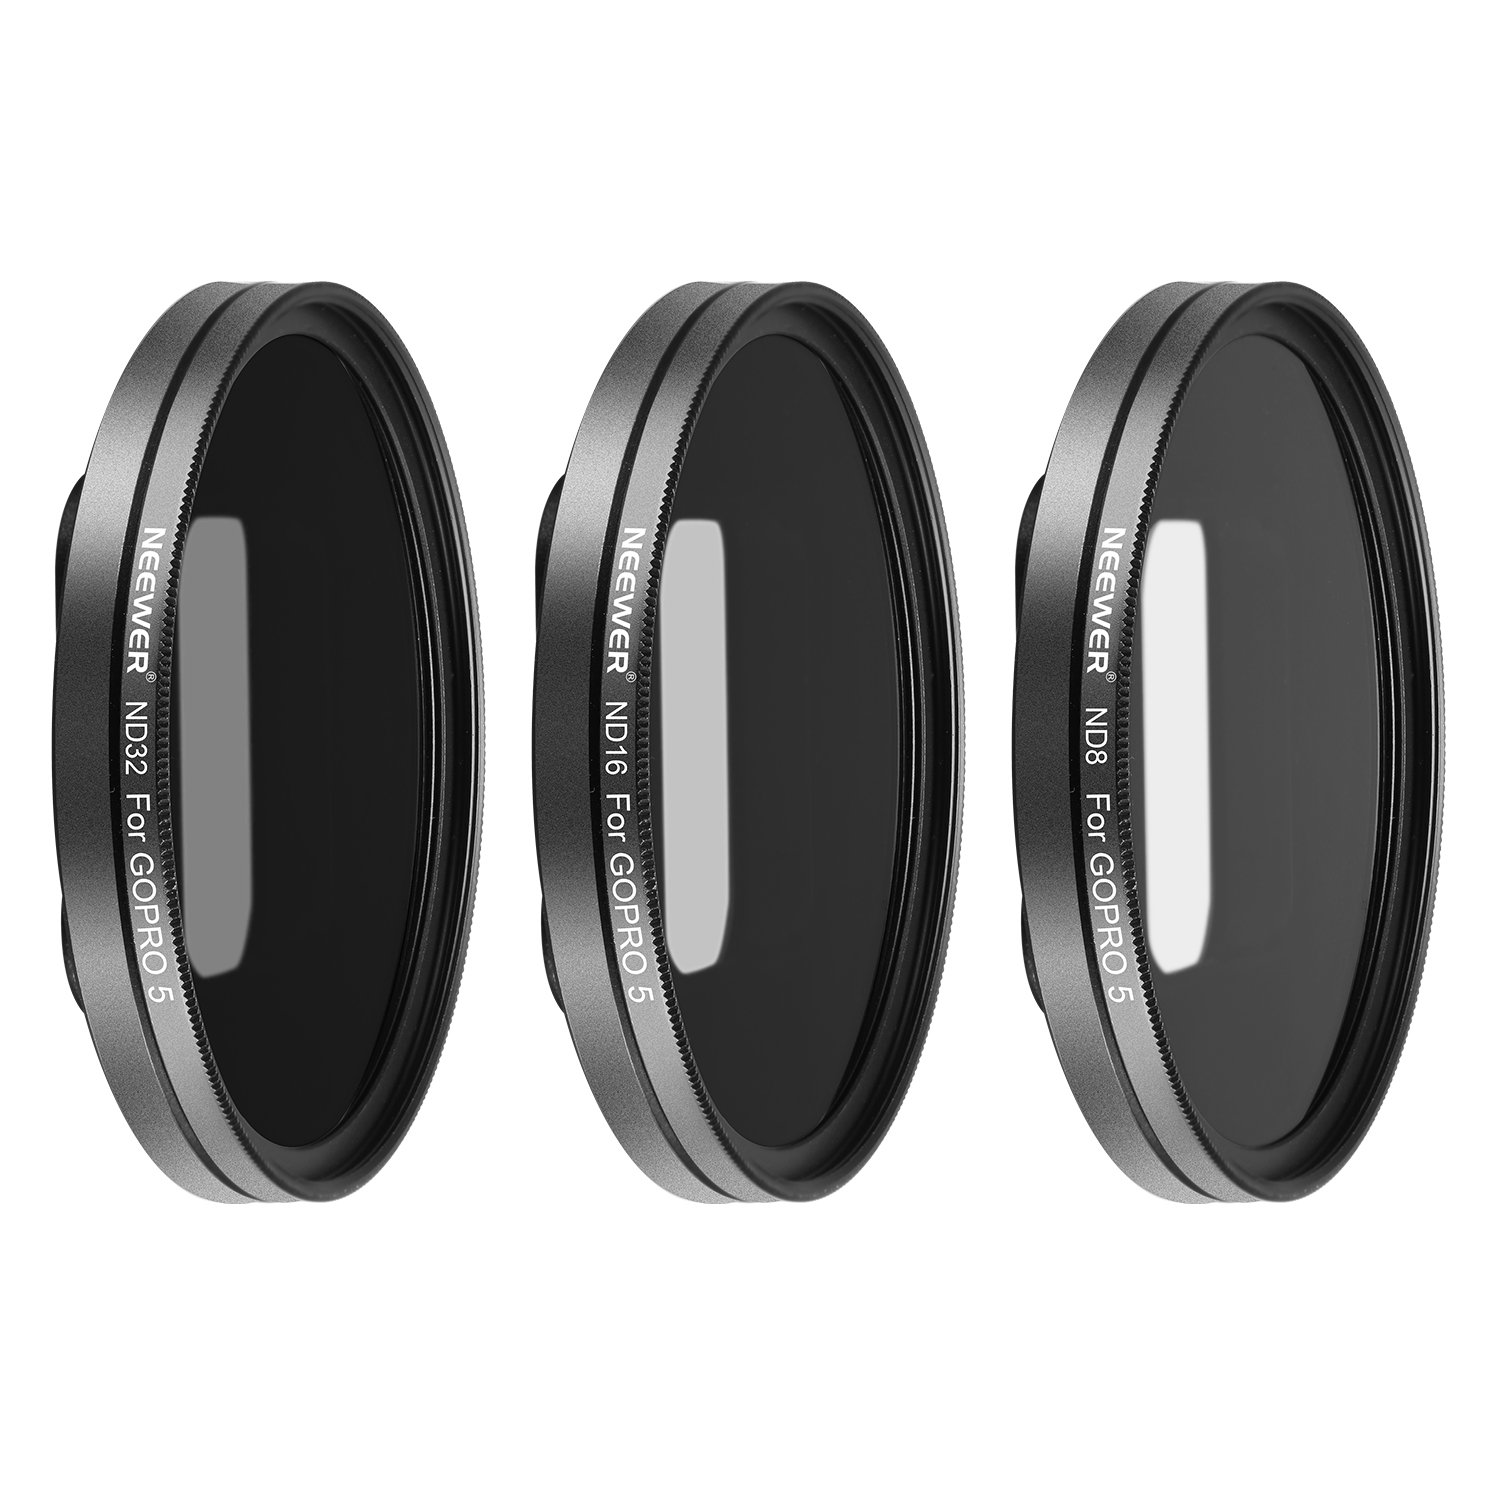 Neewer Multi-coated Lens Filter Kit for gopro 7 GoPro Hero 5, Includes UV Filter, CPL Filter, and 2 Lens Caps; Made of Aluminum Alloy Frame and HD Optical Glass 10090442